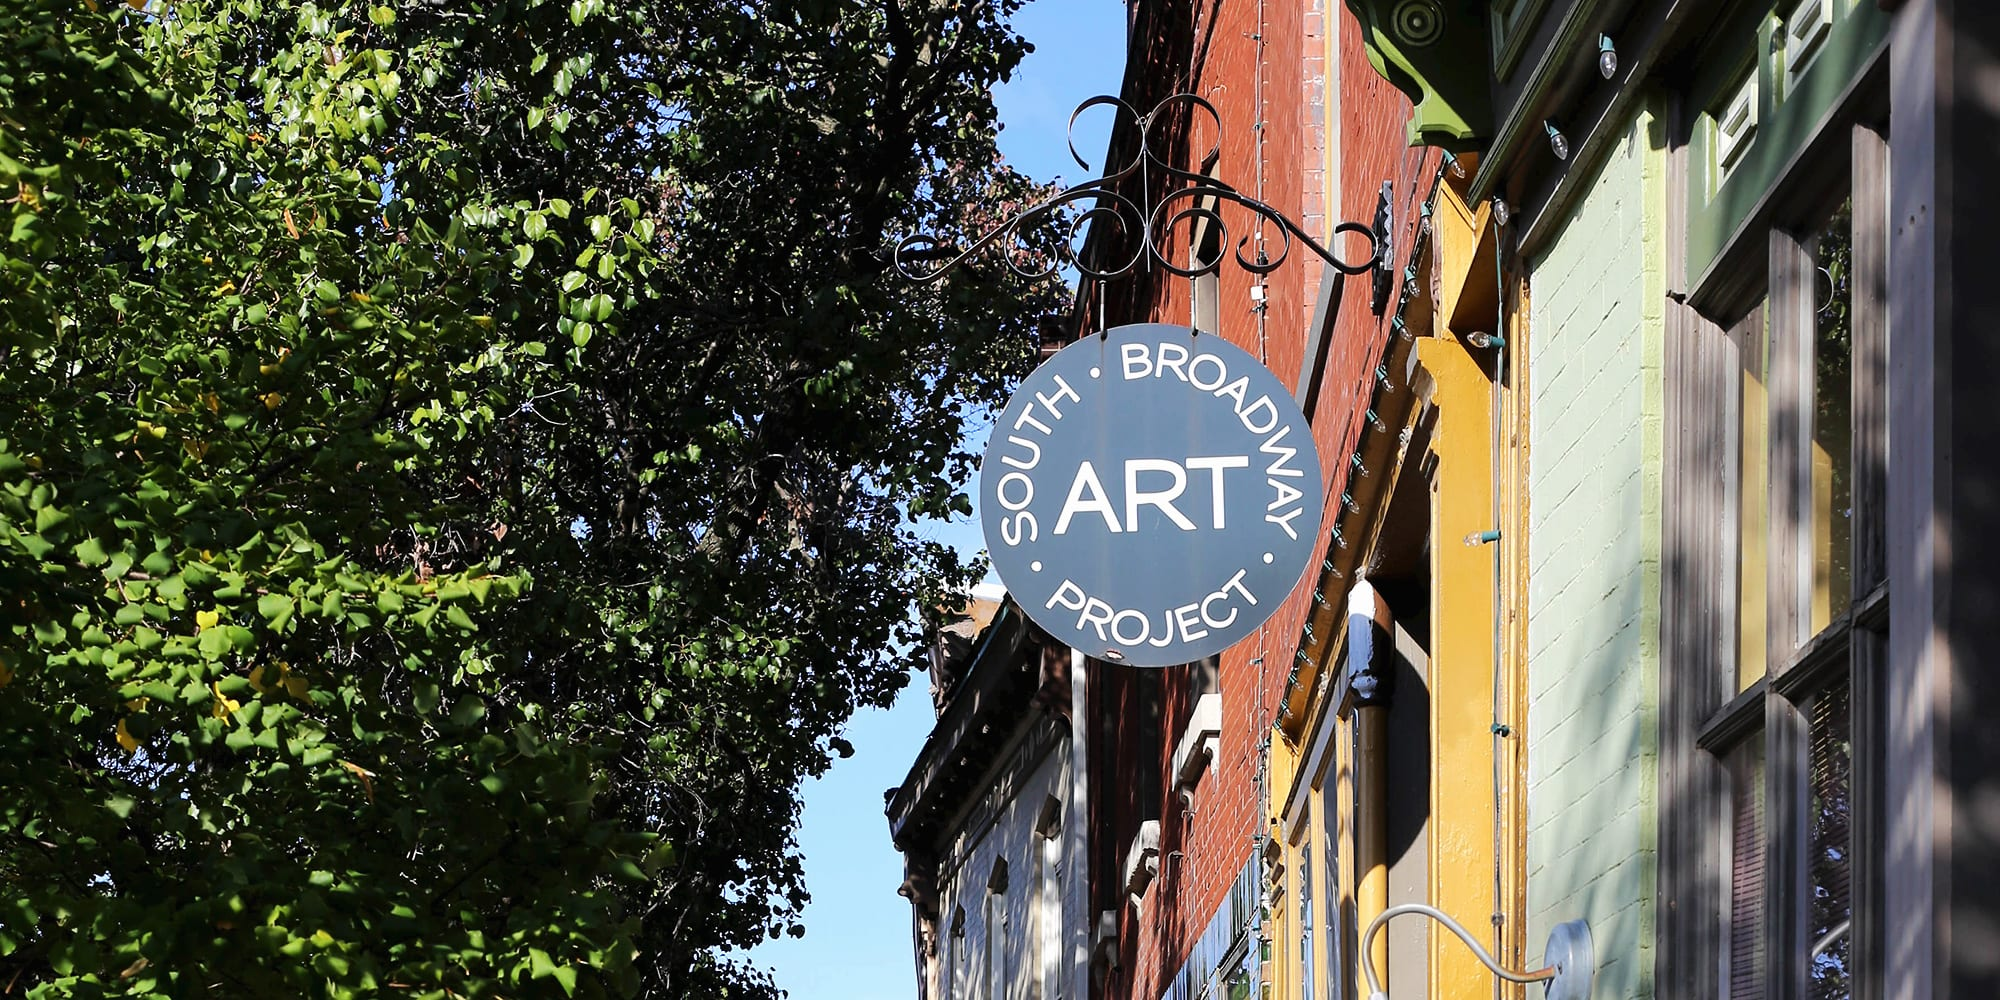 South Broadway Art Project's storefront and sign. Photo by Paul Sableman.